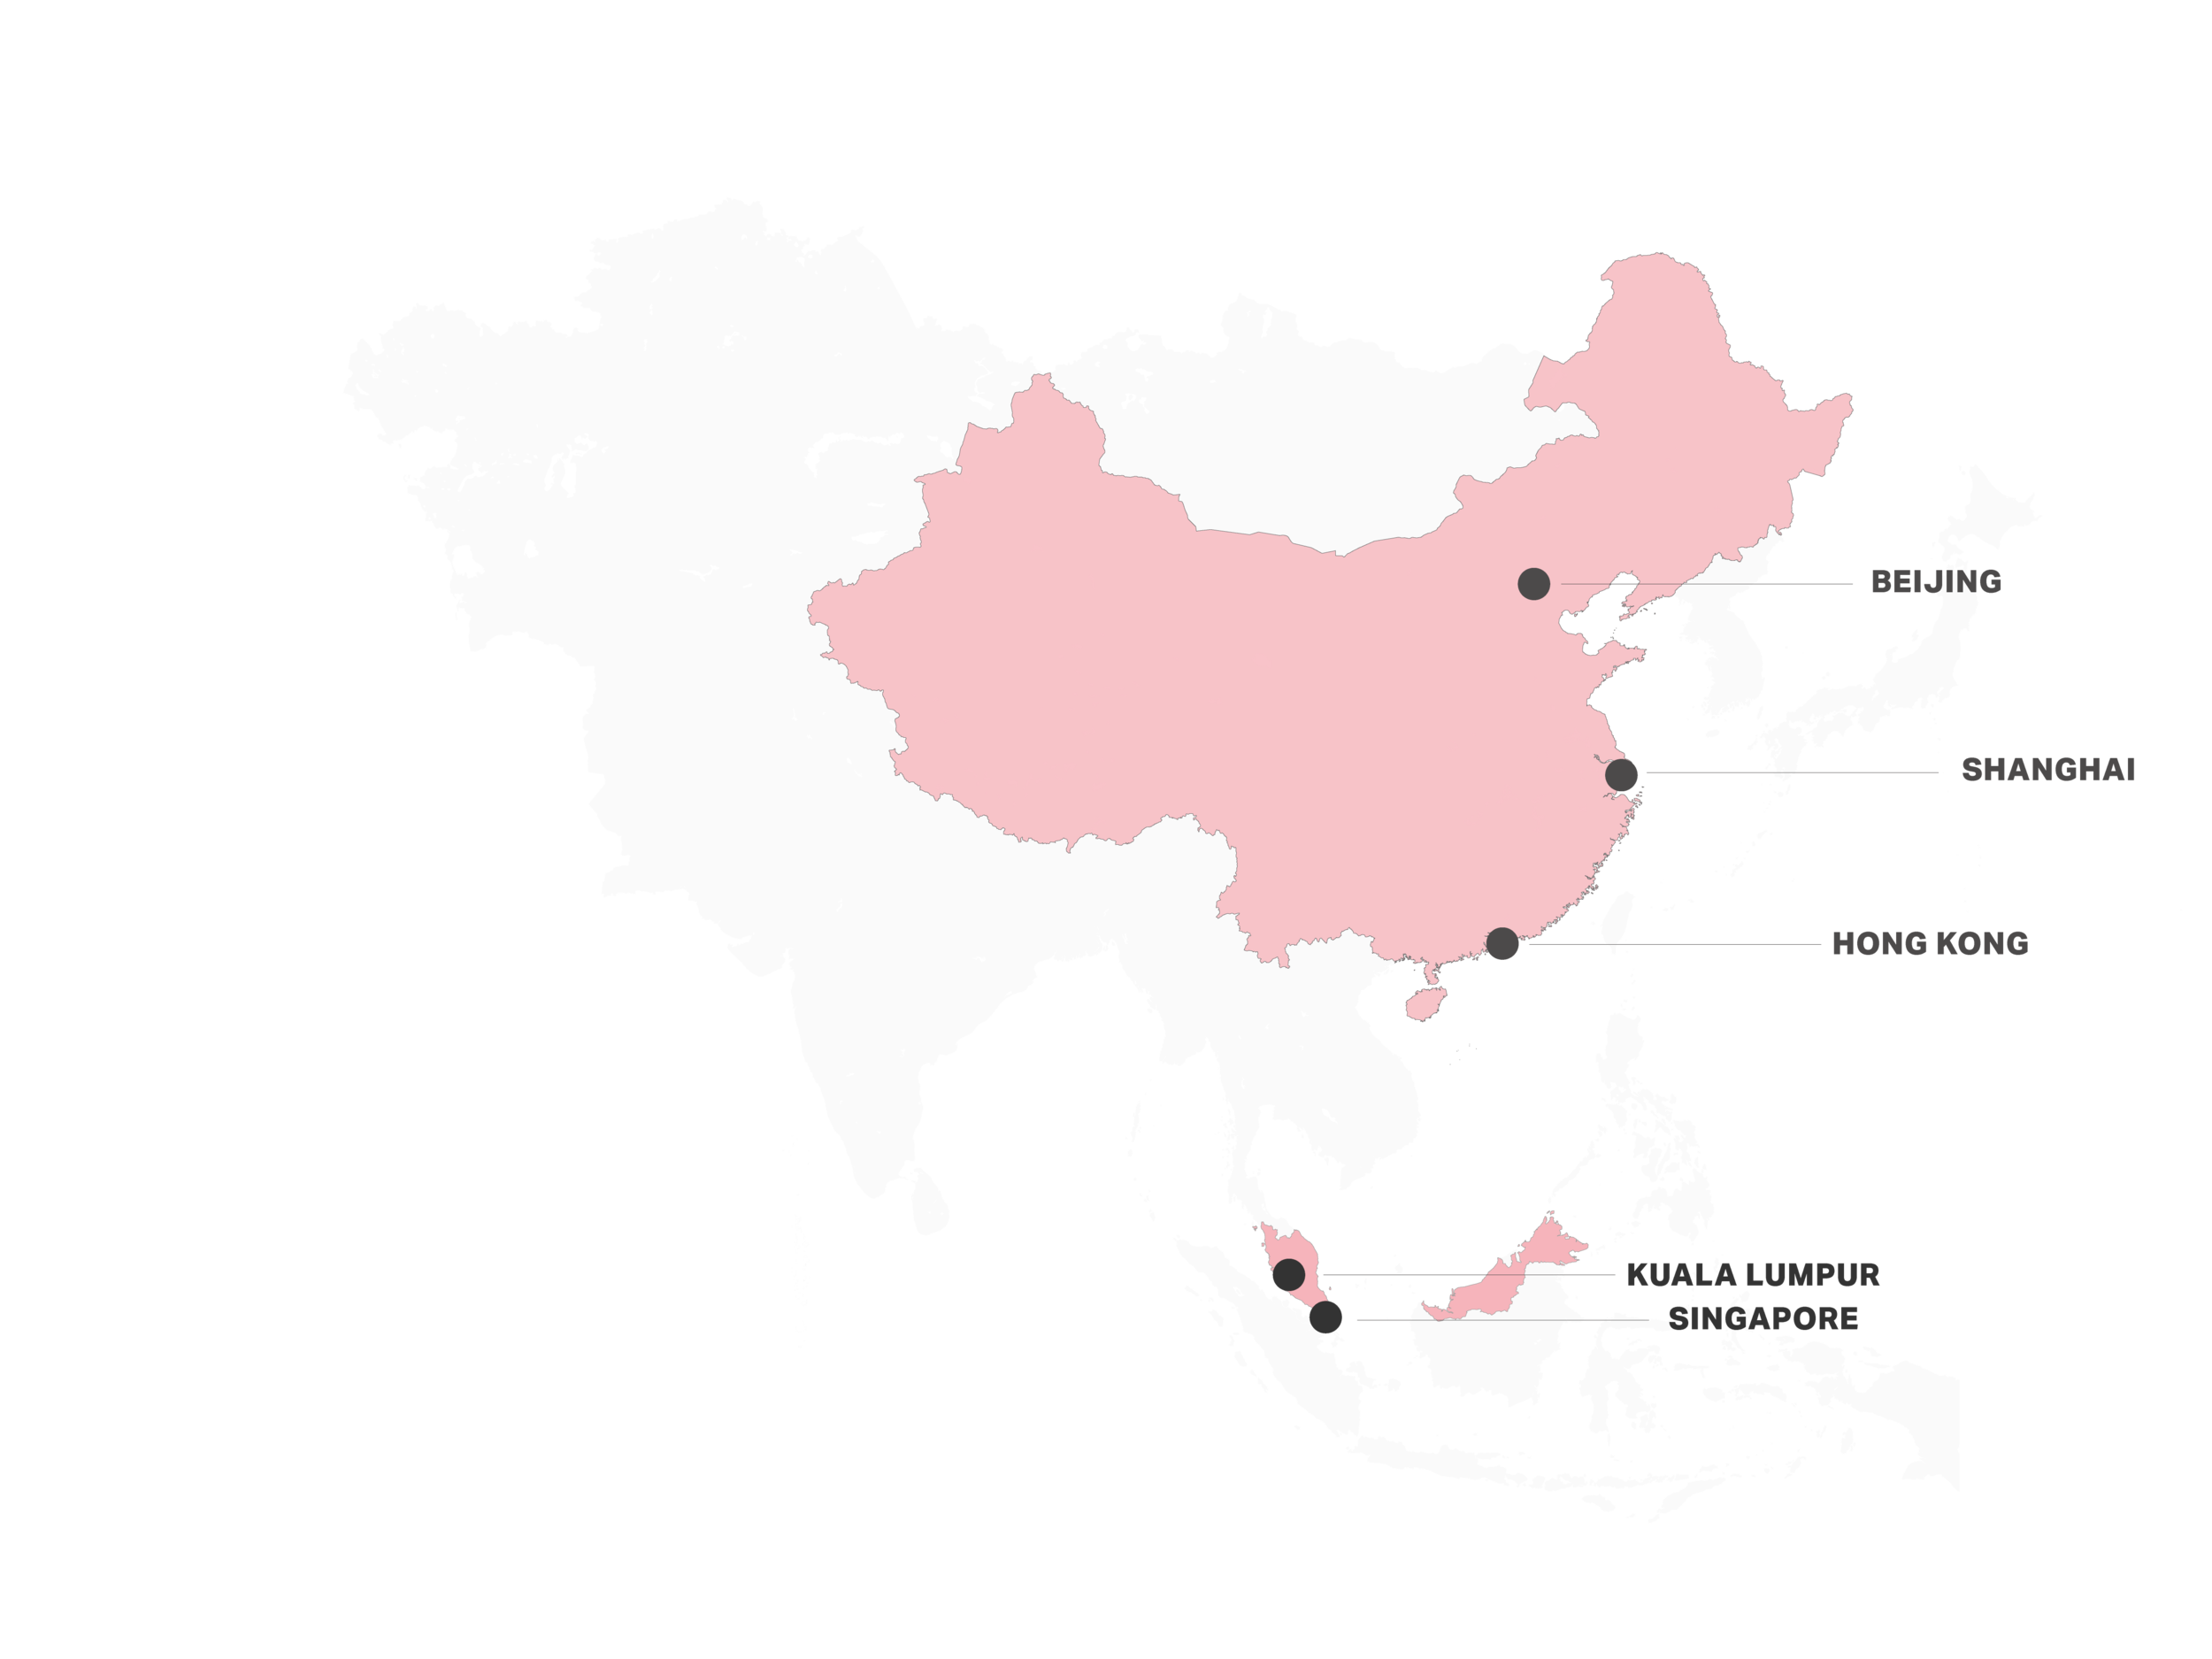 testmap6-01.png